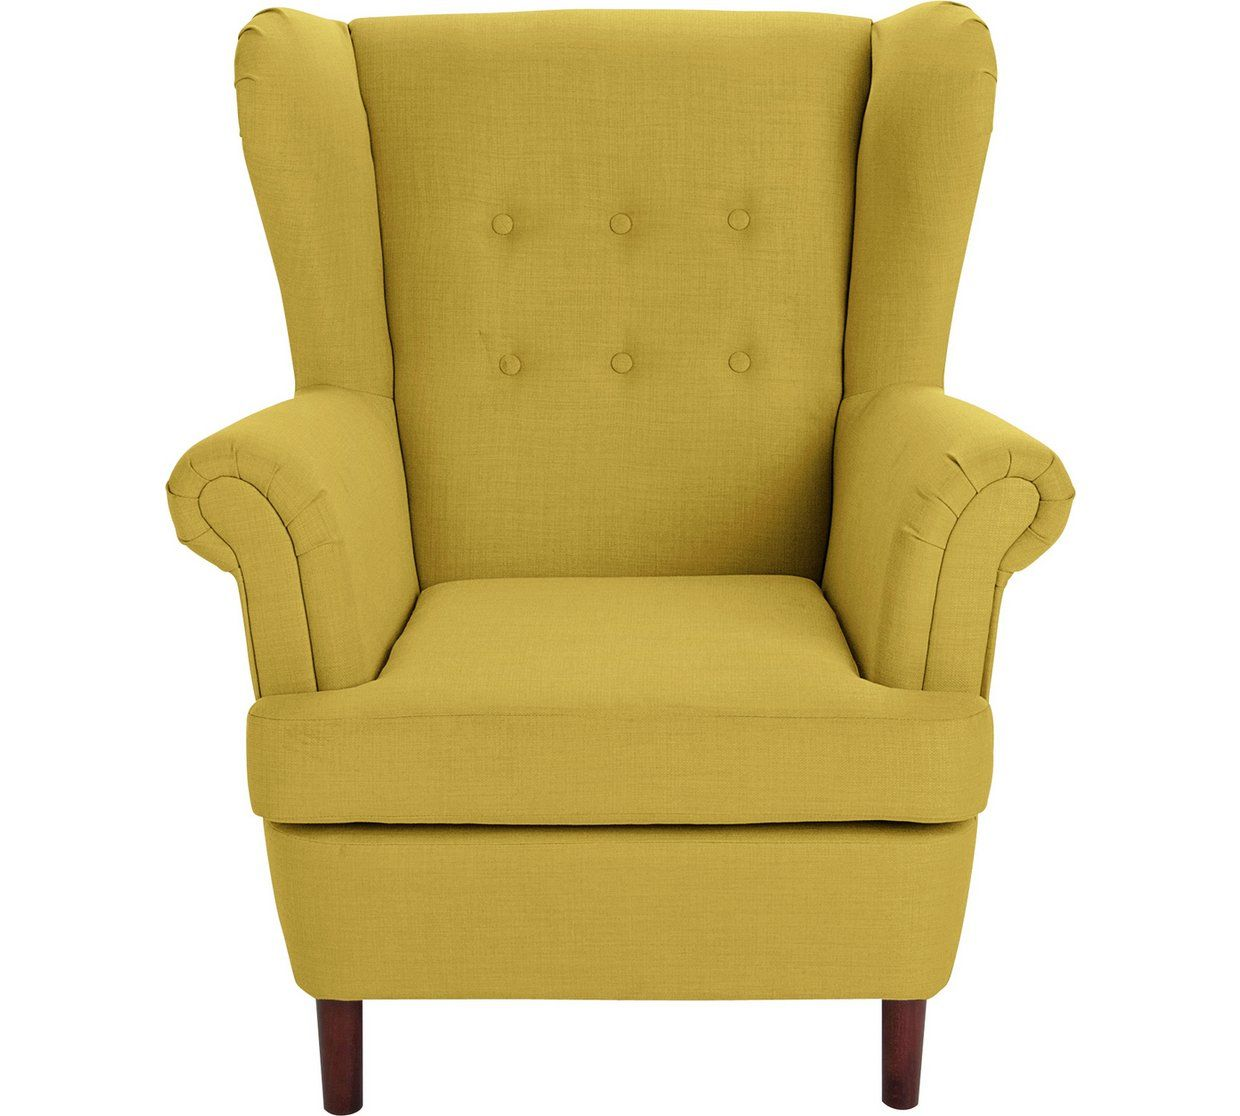 Baby Chairs Argos Buy Collection Martha Fabric Wingback Chair Yellow